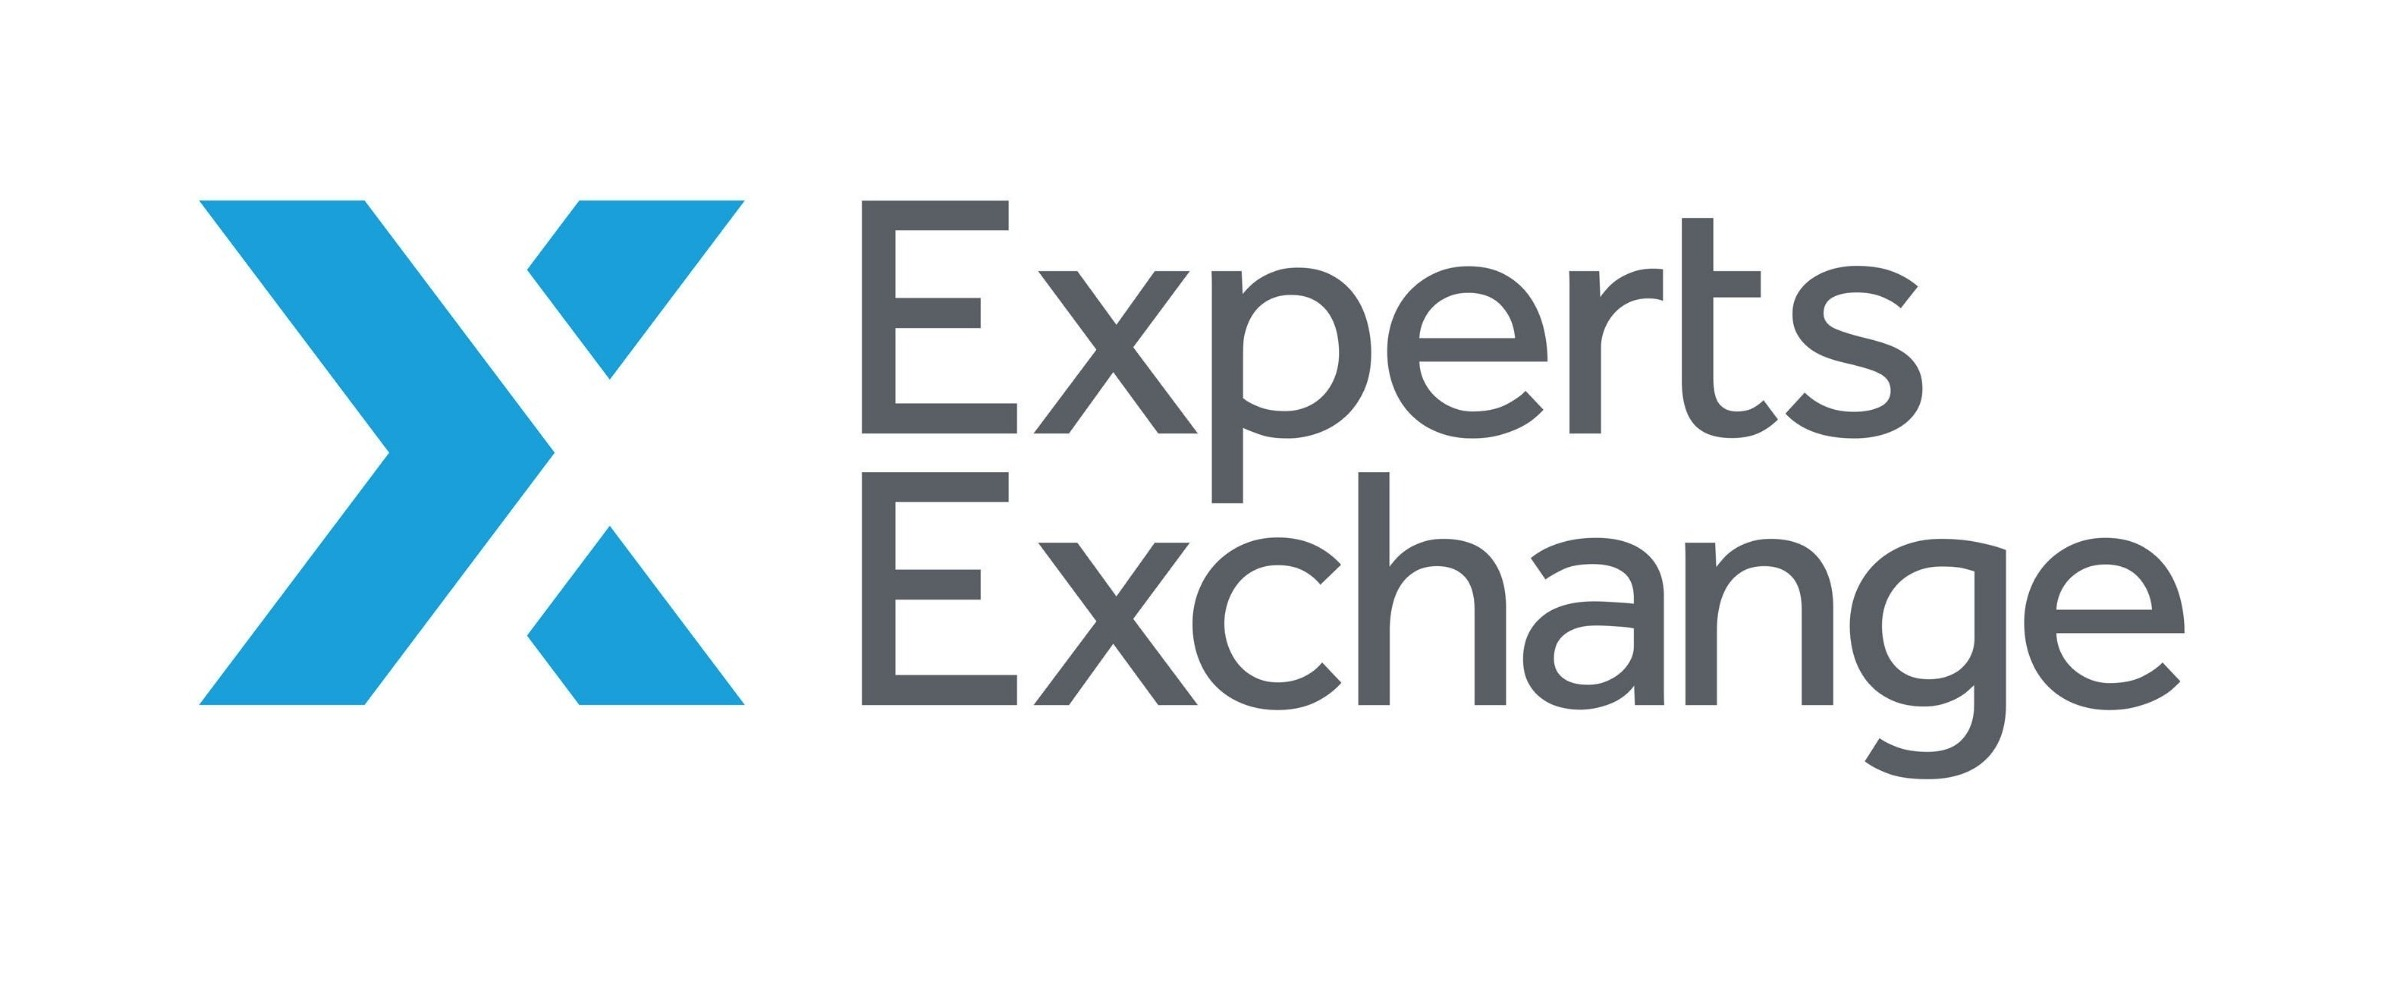 Experts Exchange coupon code